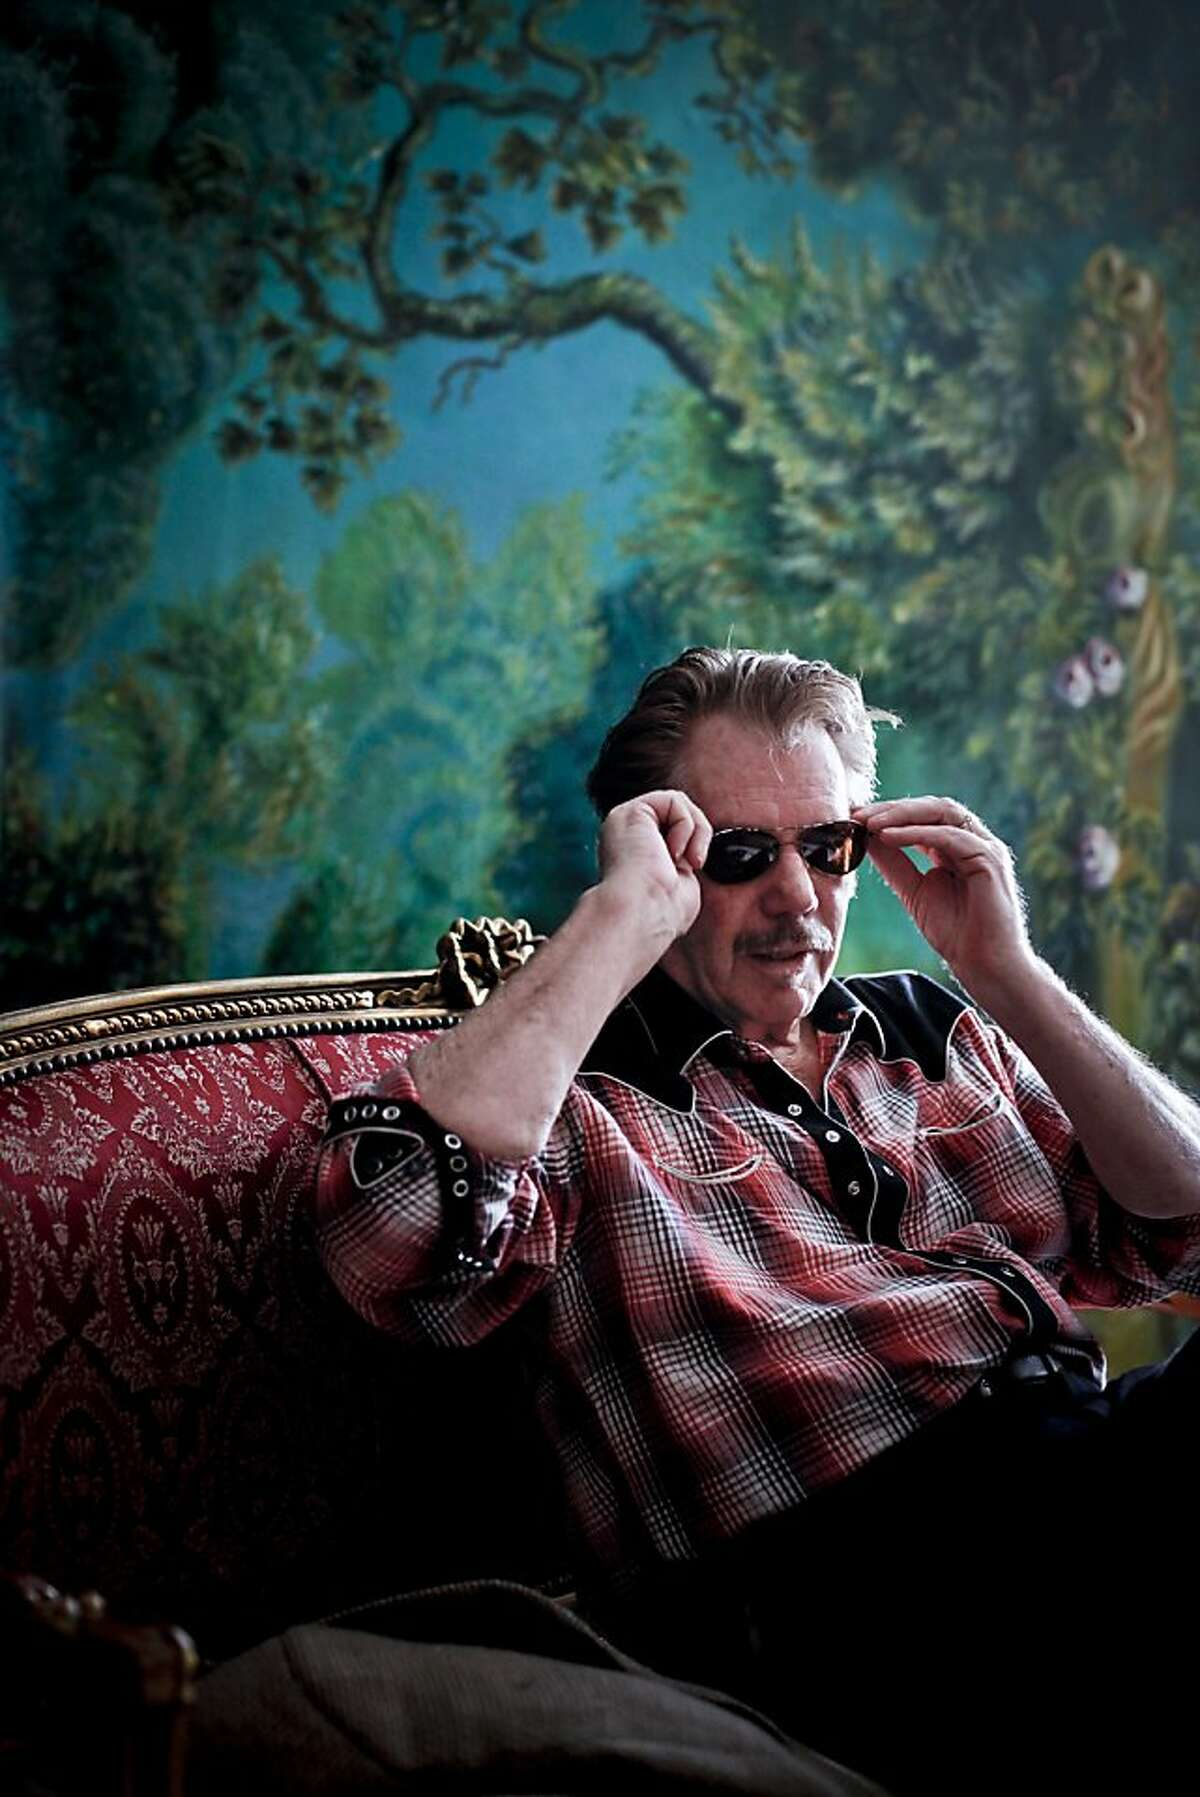 Musician Dan Hicks talks about his 70th birthday concert on Friday, March 23, 2012 in Mill Valley, Calif.